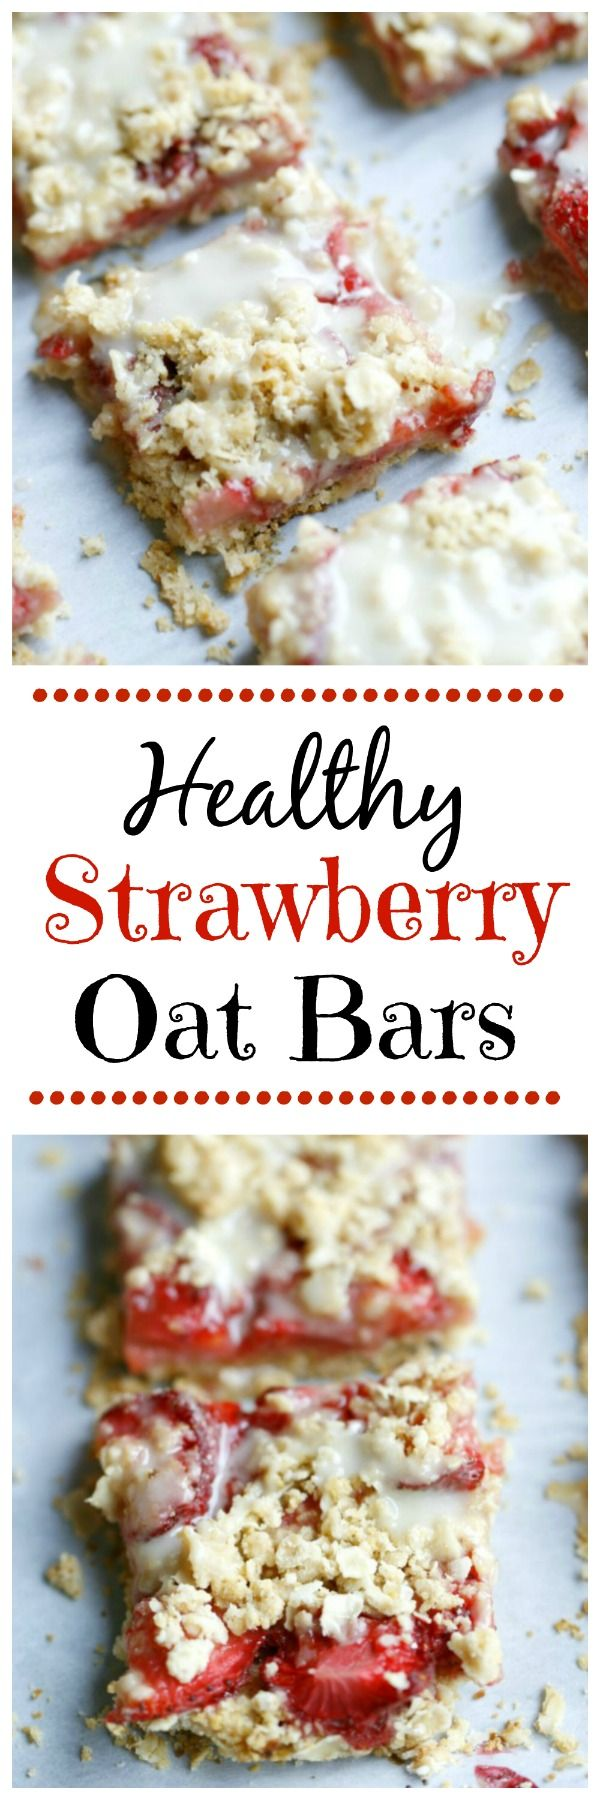 Enjoy the taste of a strawberry Nutrigrain bar in my homemade and healthy Strawberry Oat Bars. Do you remember eating Nutrigrain bars as a kid? I sure do. My two favorite flavours were strawberry and apple-cinnamon. My kids actually take them as snacks to school sometimes. I wanted to try and recreate that strawberry-oat flavour …